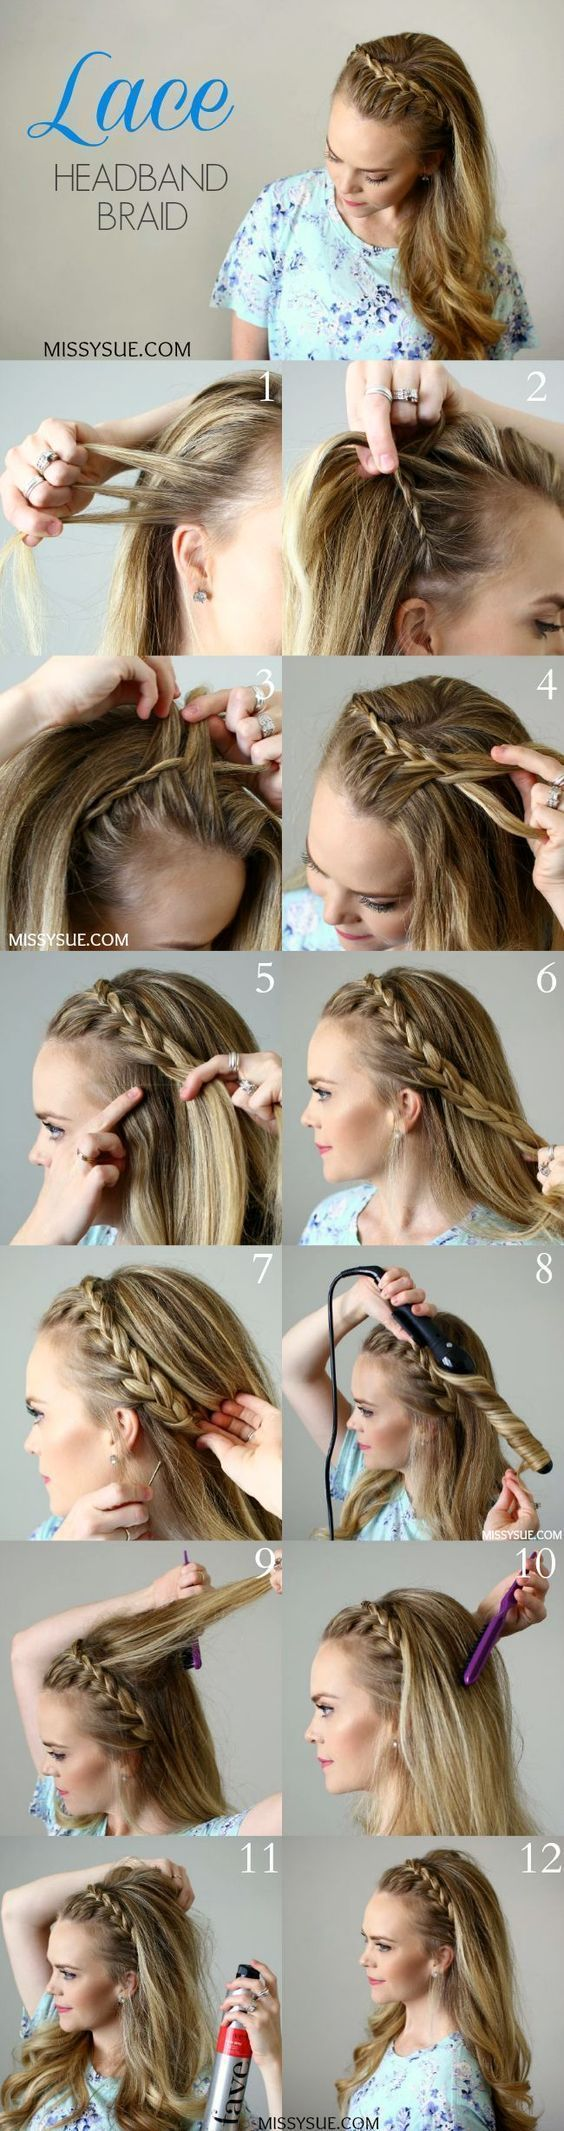 best hair and beauty stuff images on pinterest hairstyles